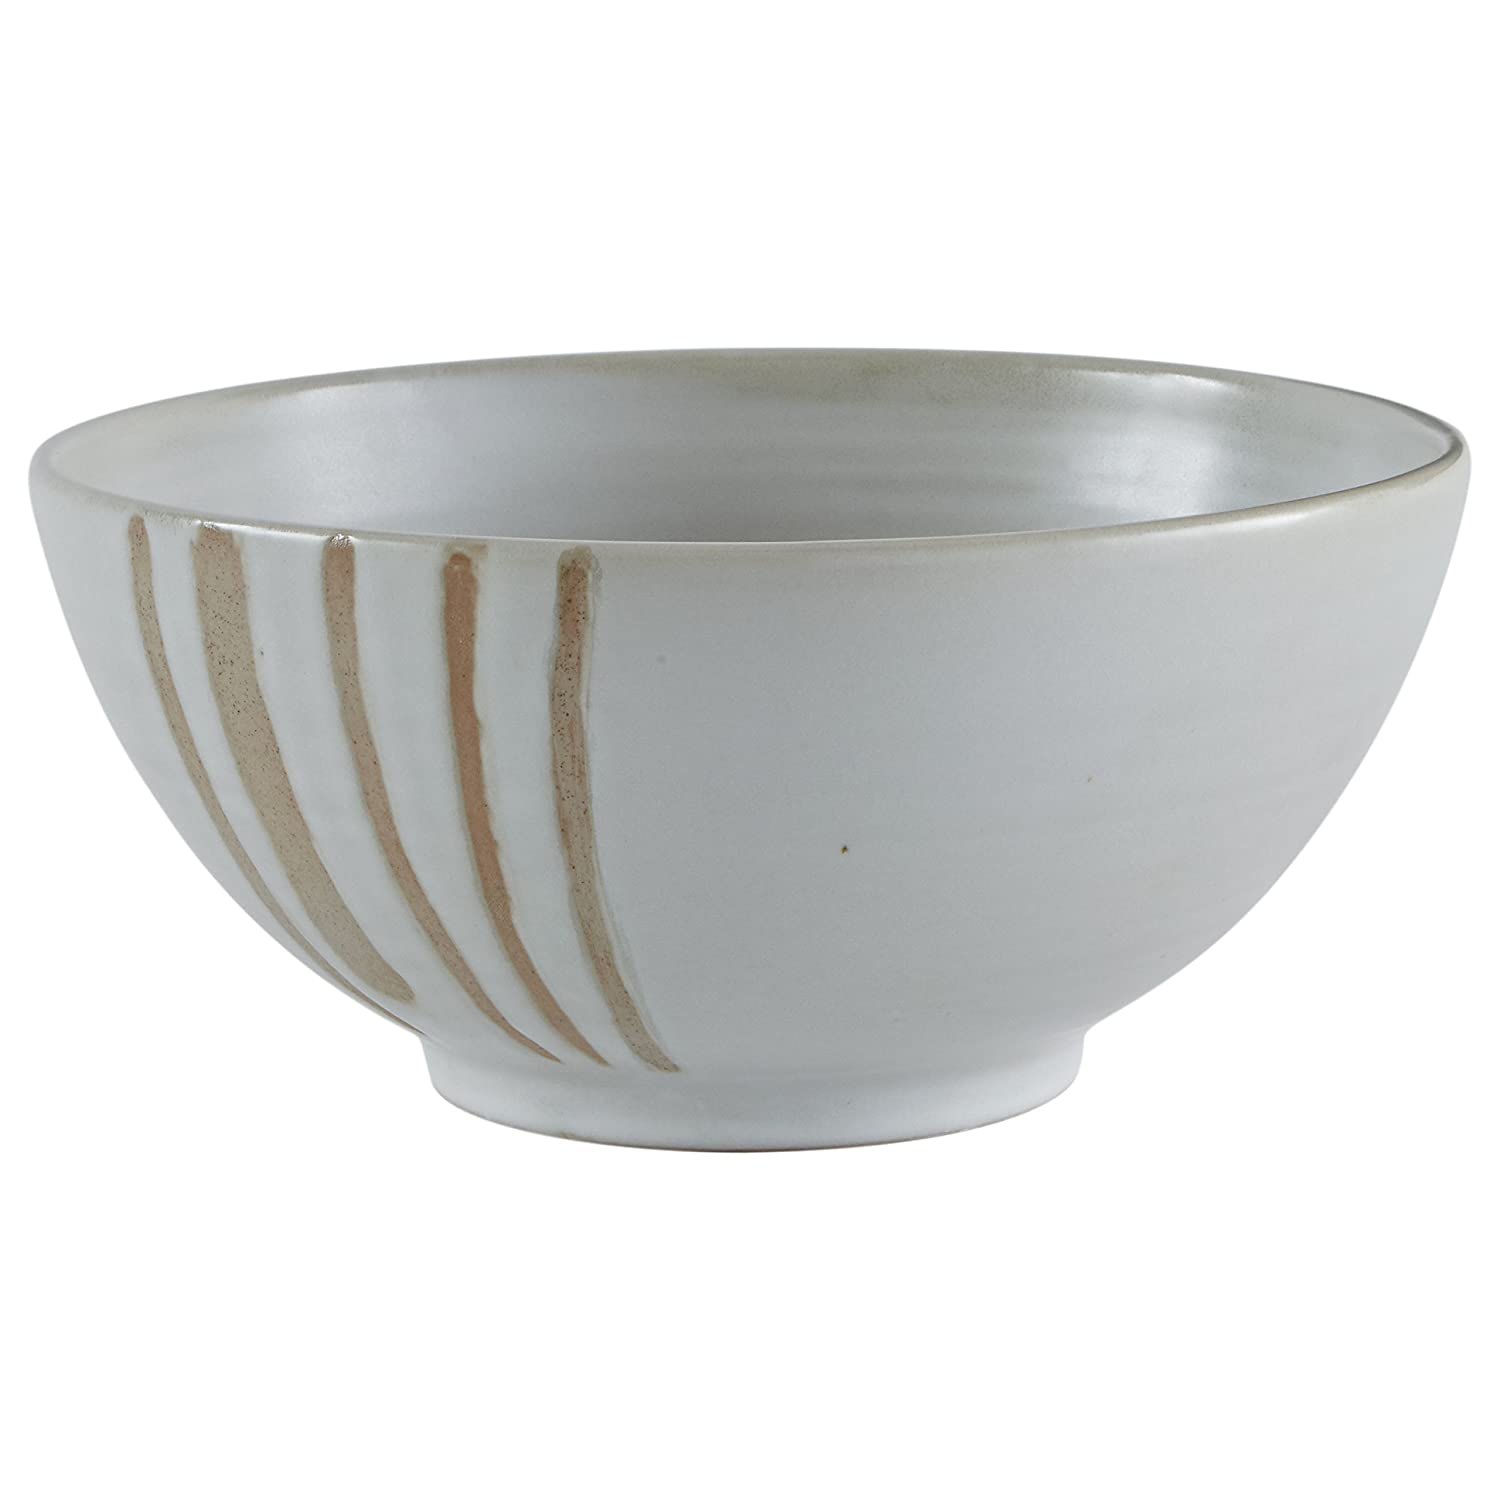 Stone & Beam Modern Stoneware Decorative Bowl, 4.9